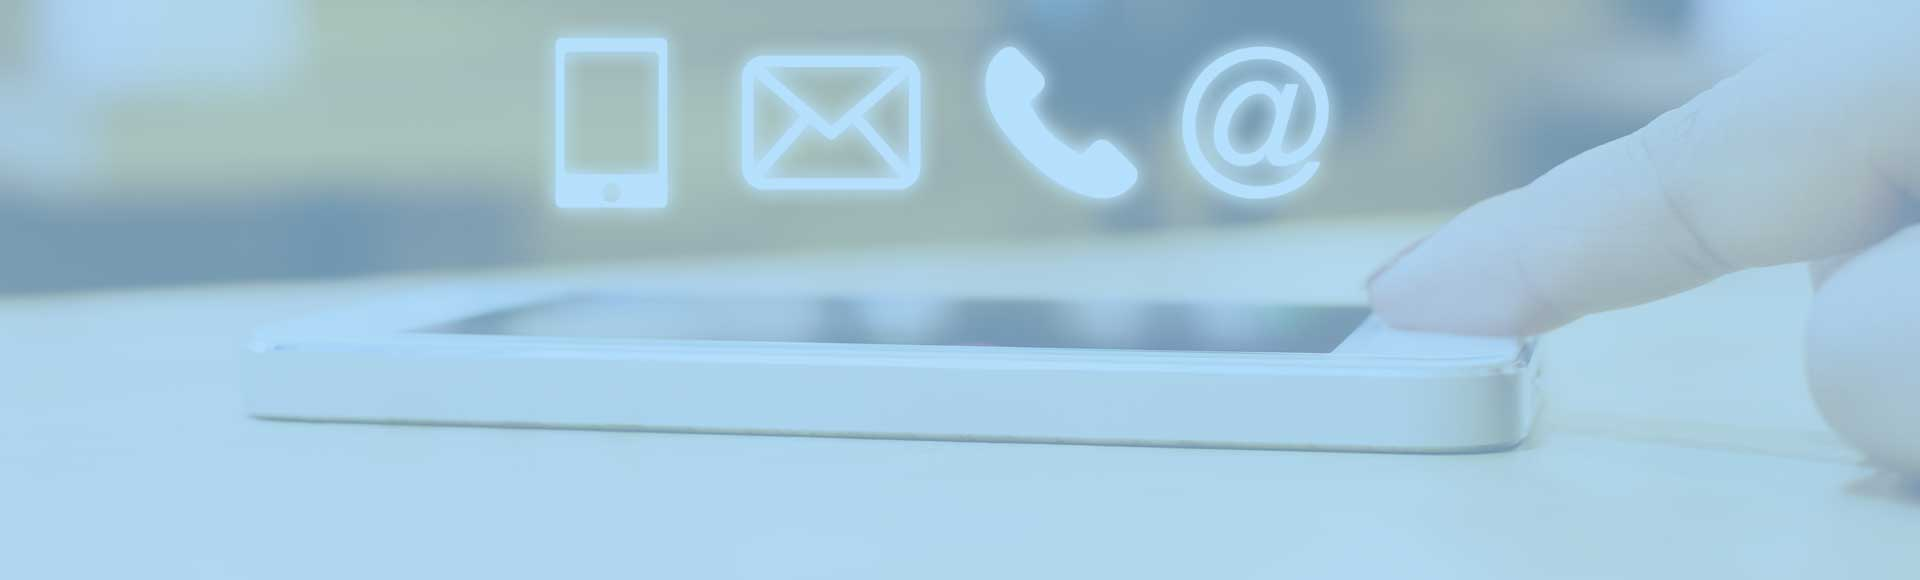 A mobile phone with icons for email and phones above it